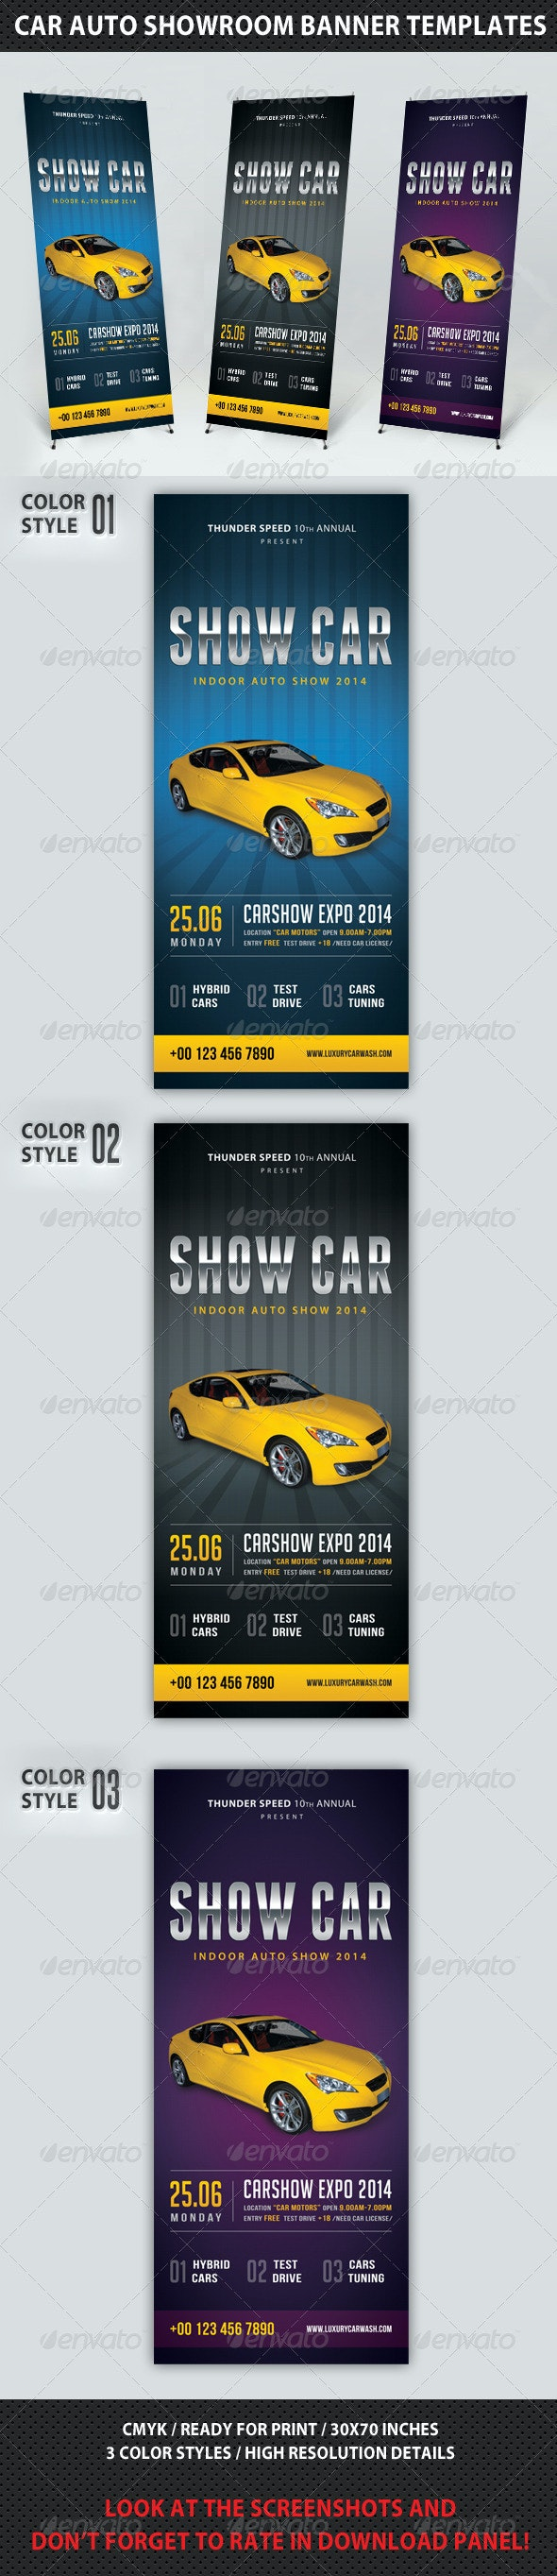 Auto Showroom Banner Template - Signage Print Templates